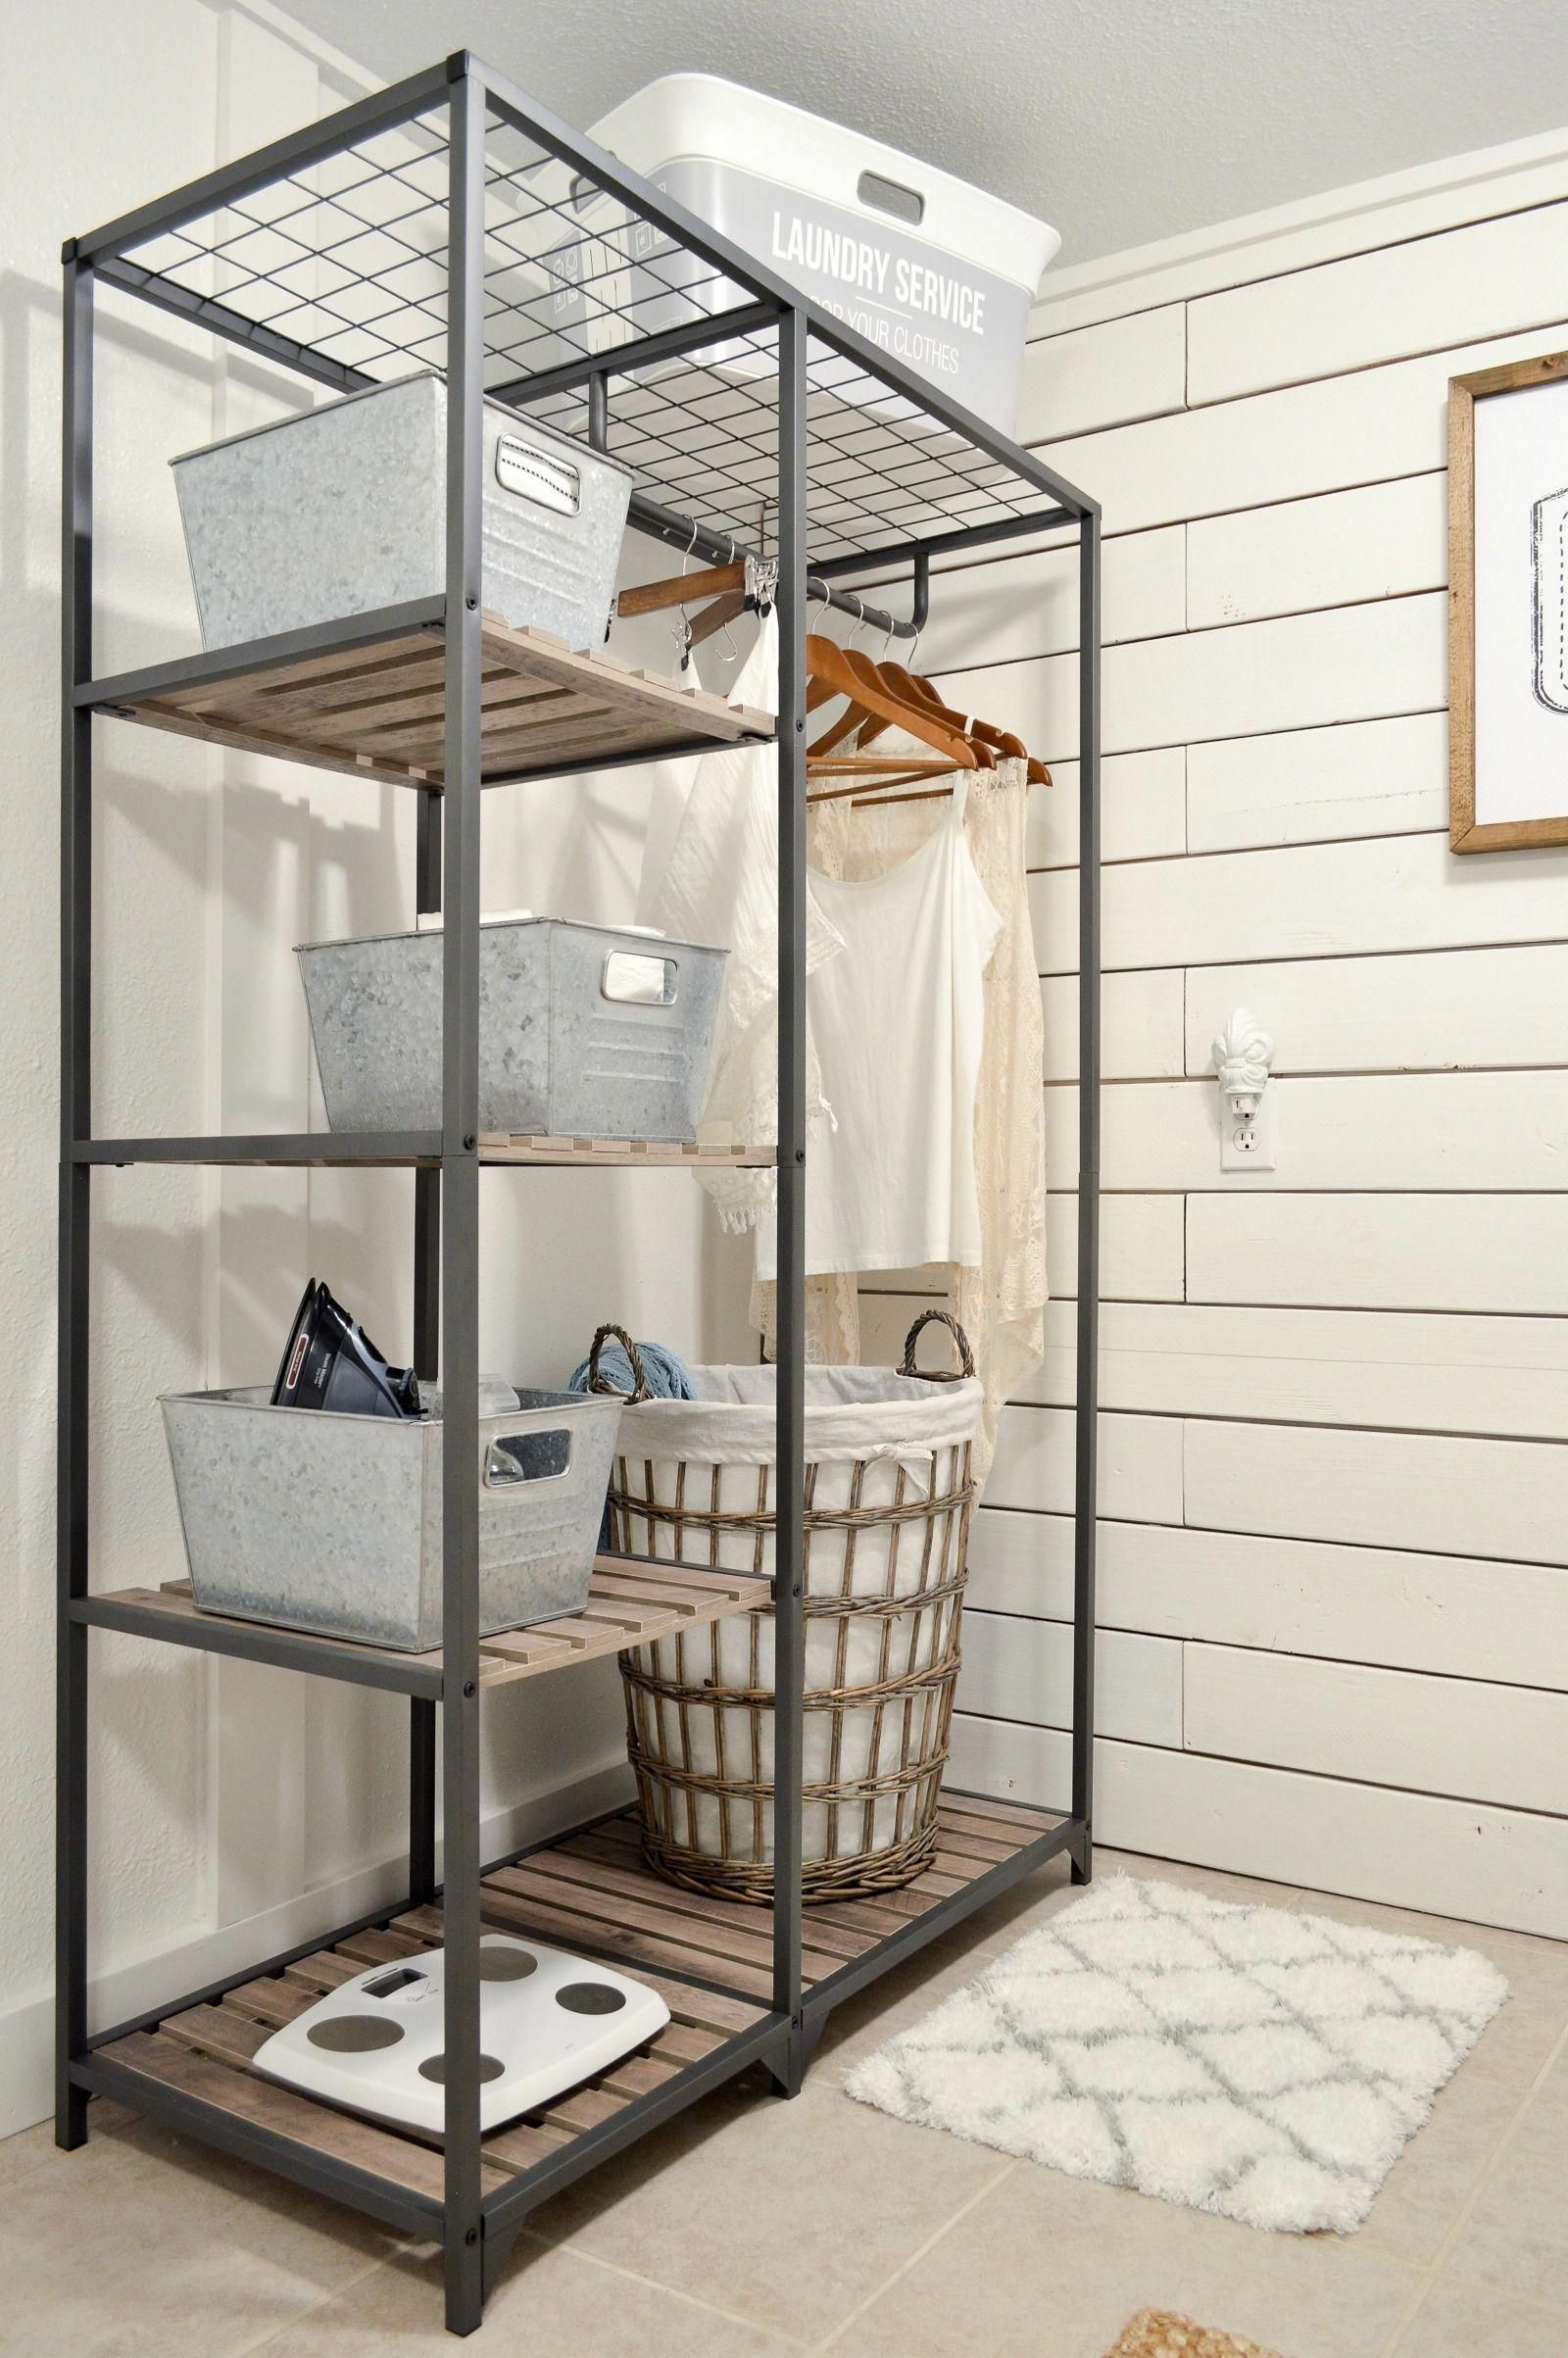 We Love This Wood Metal Shelf With A Hanging Rod Small Space